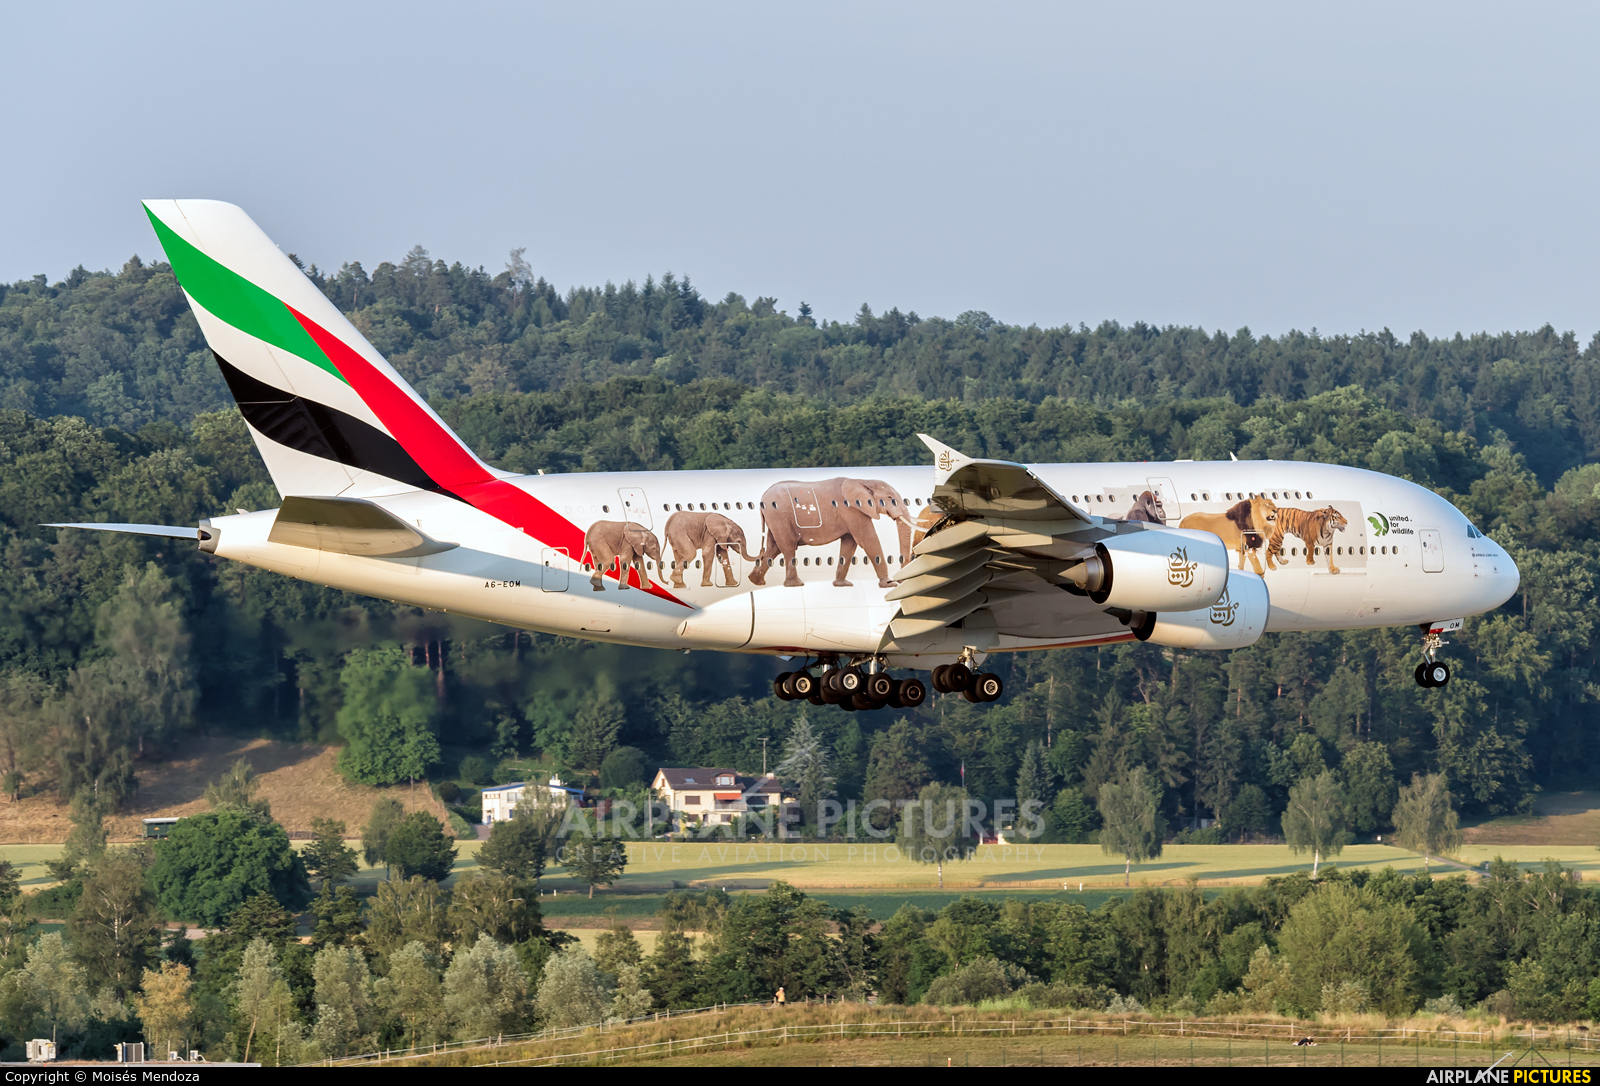 Emirates Airlines A6-EOM aircraft at Zurich